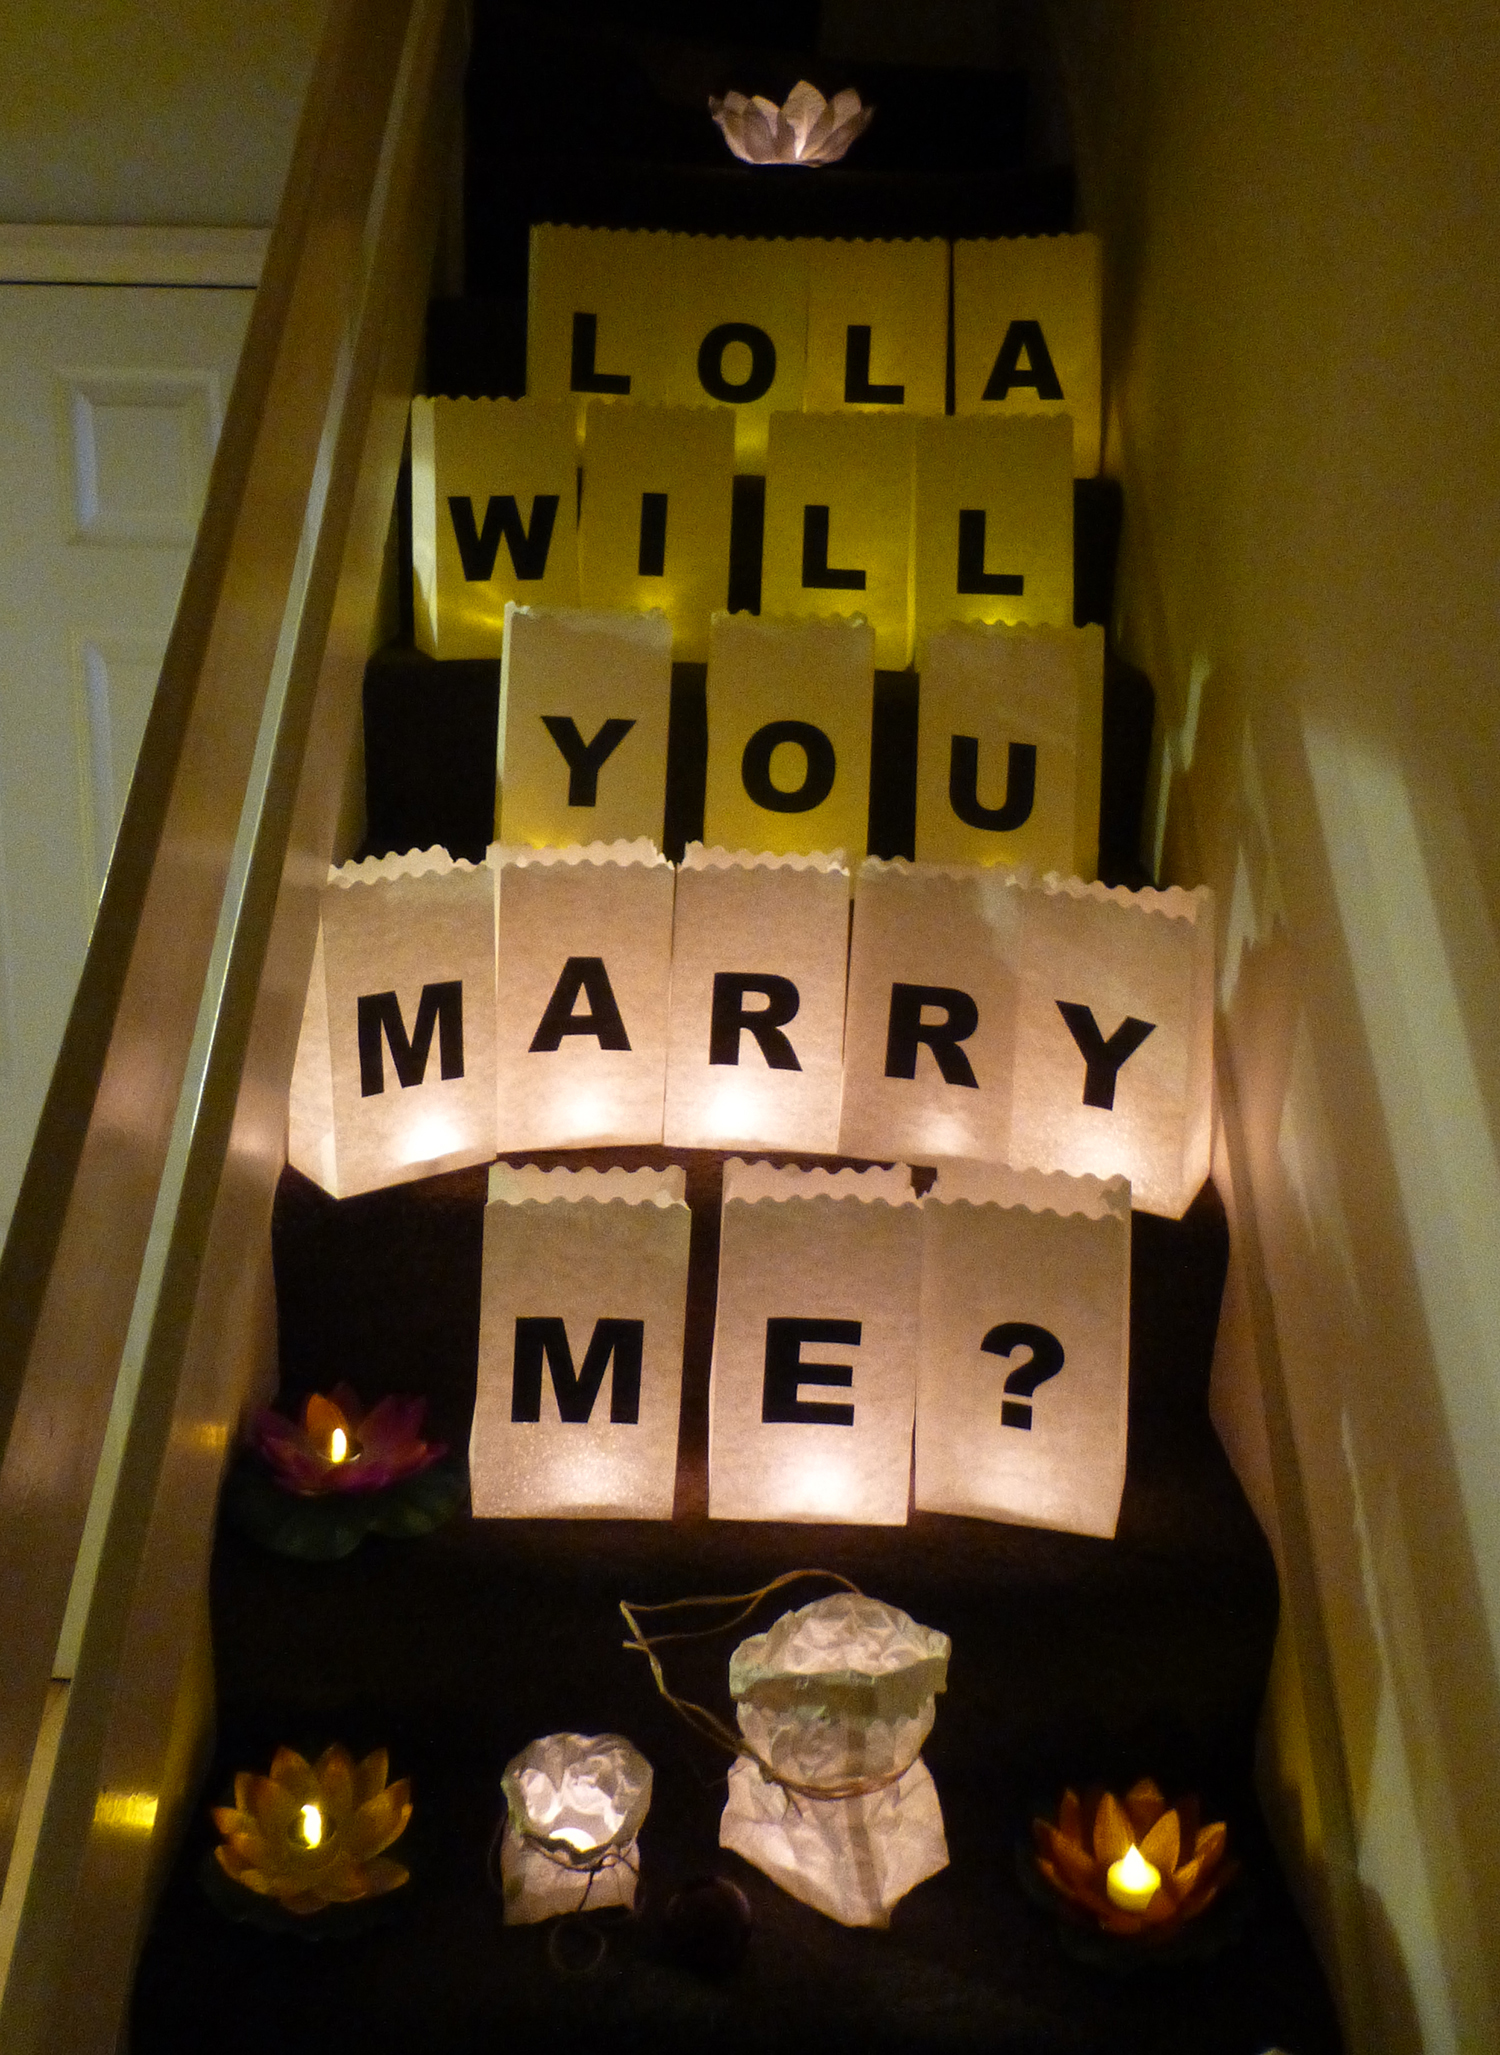 Printed letters luminary candle bags for Marry me light up letters